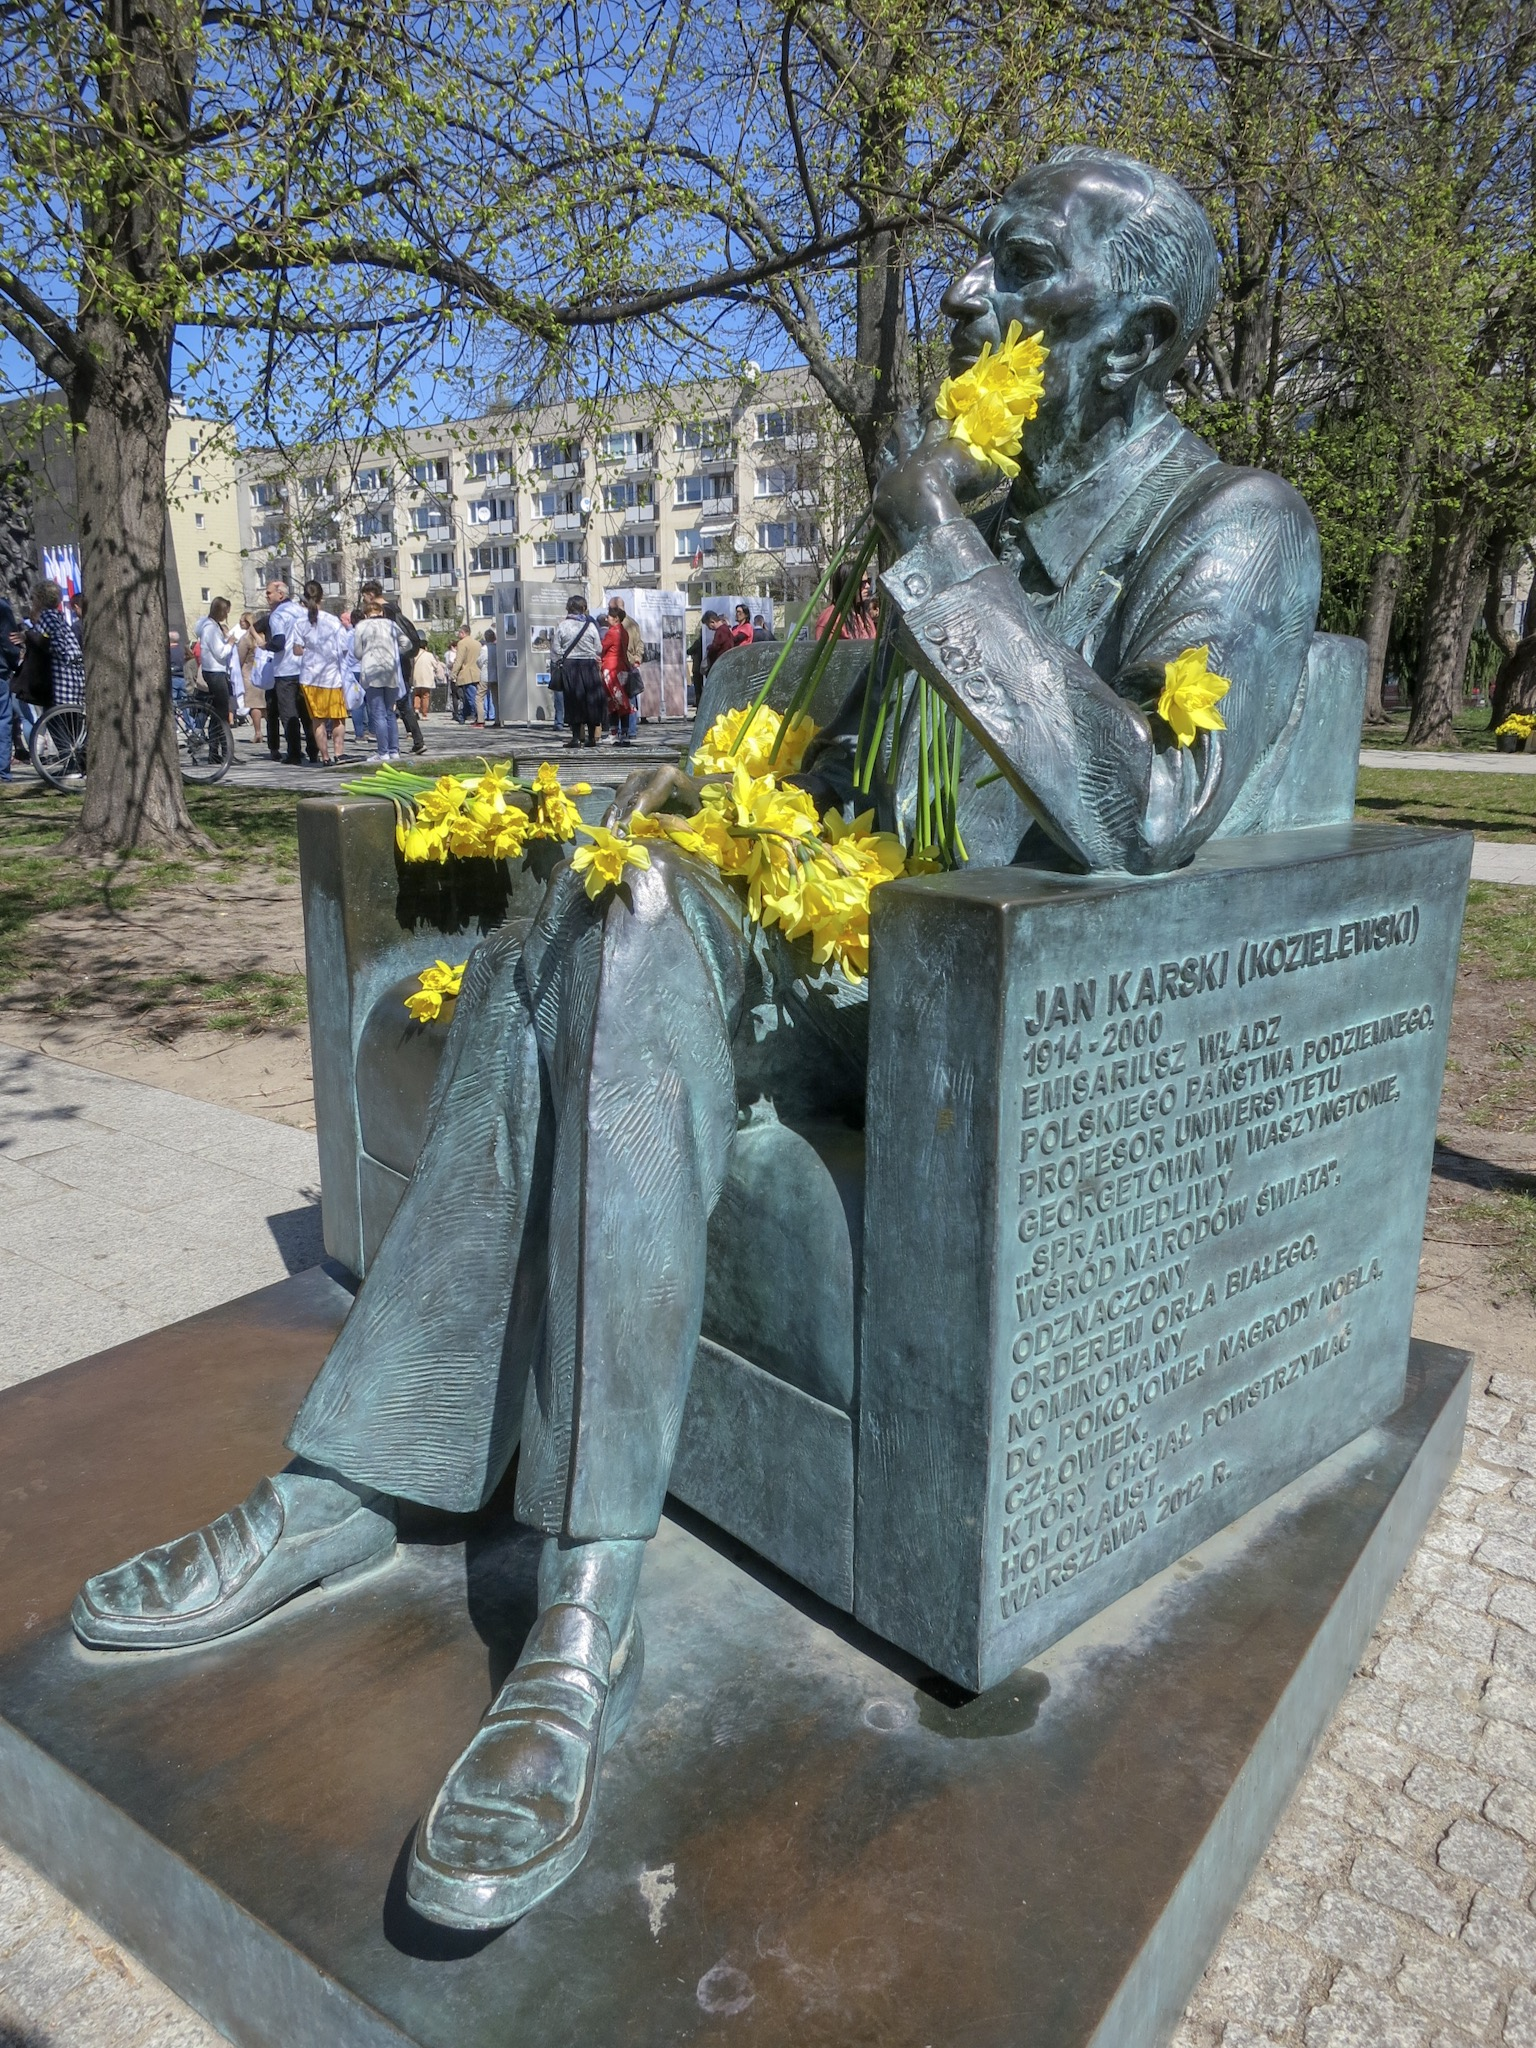 Daffodils are strewn on the statue of Jan Karski in commemoration of the 76th Anniversary of the Warsaw Ghetto Uprising